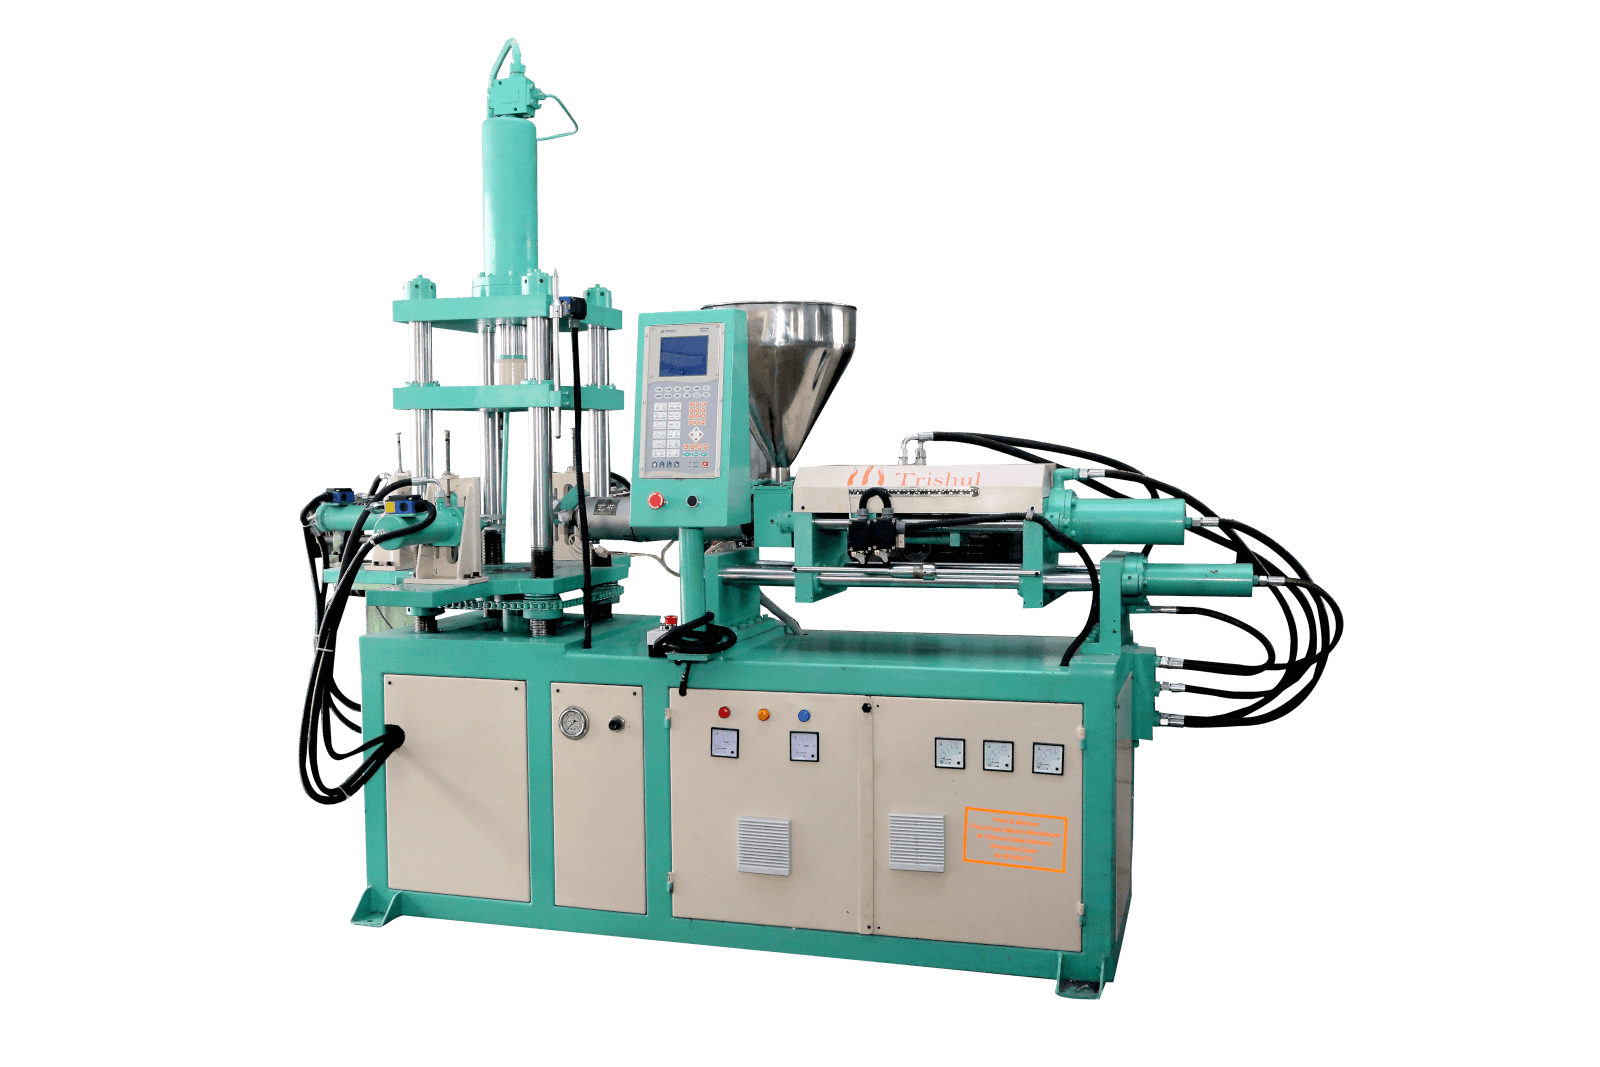 Trishul Plastic | Injection Moulding Machines Manufacturer